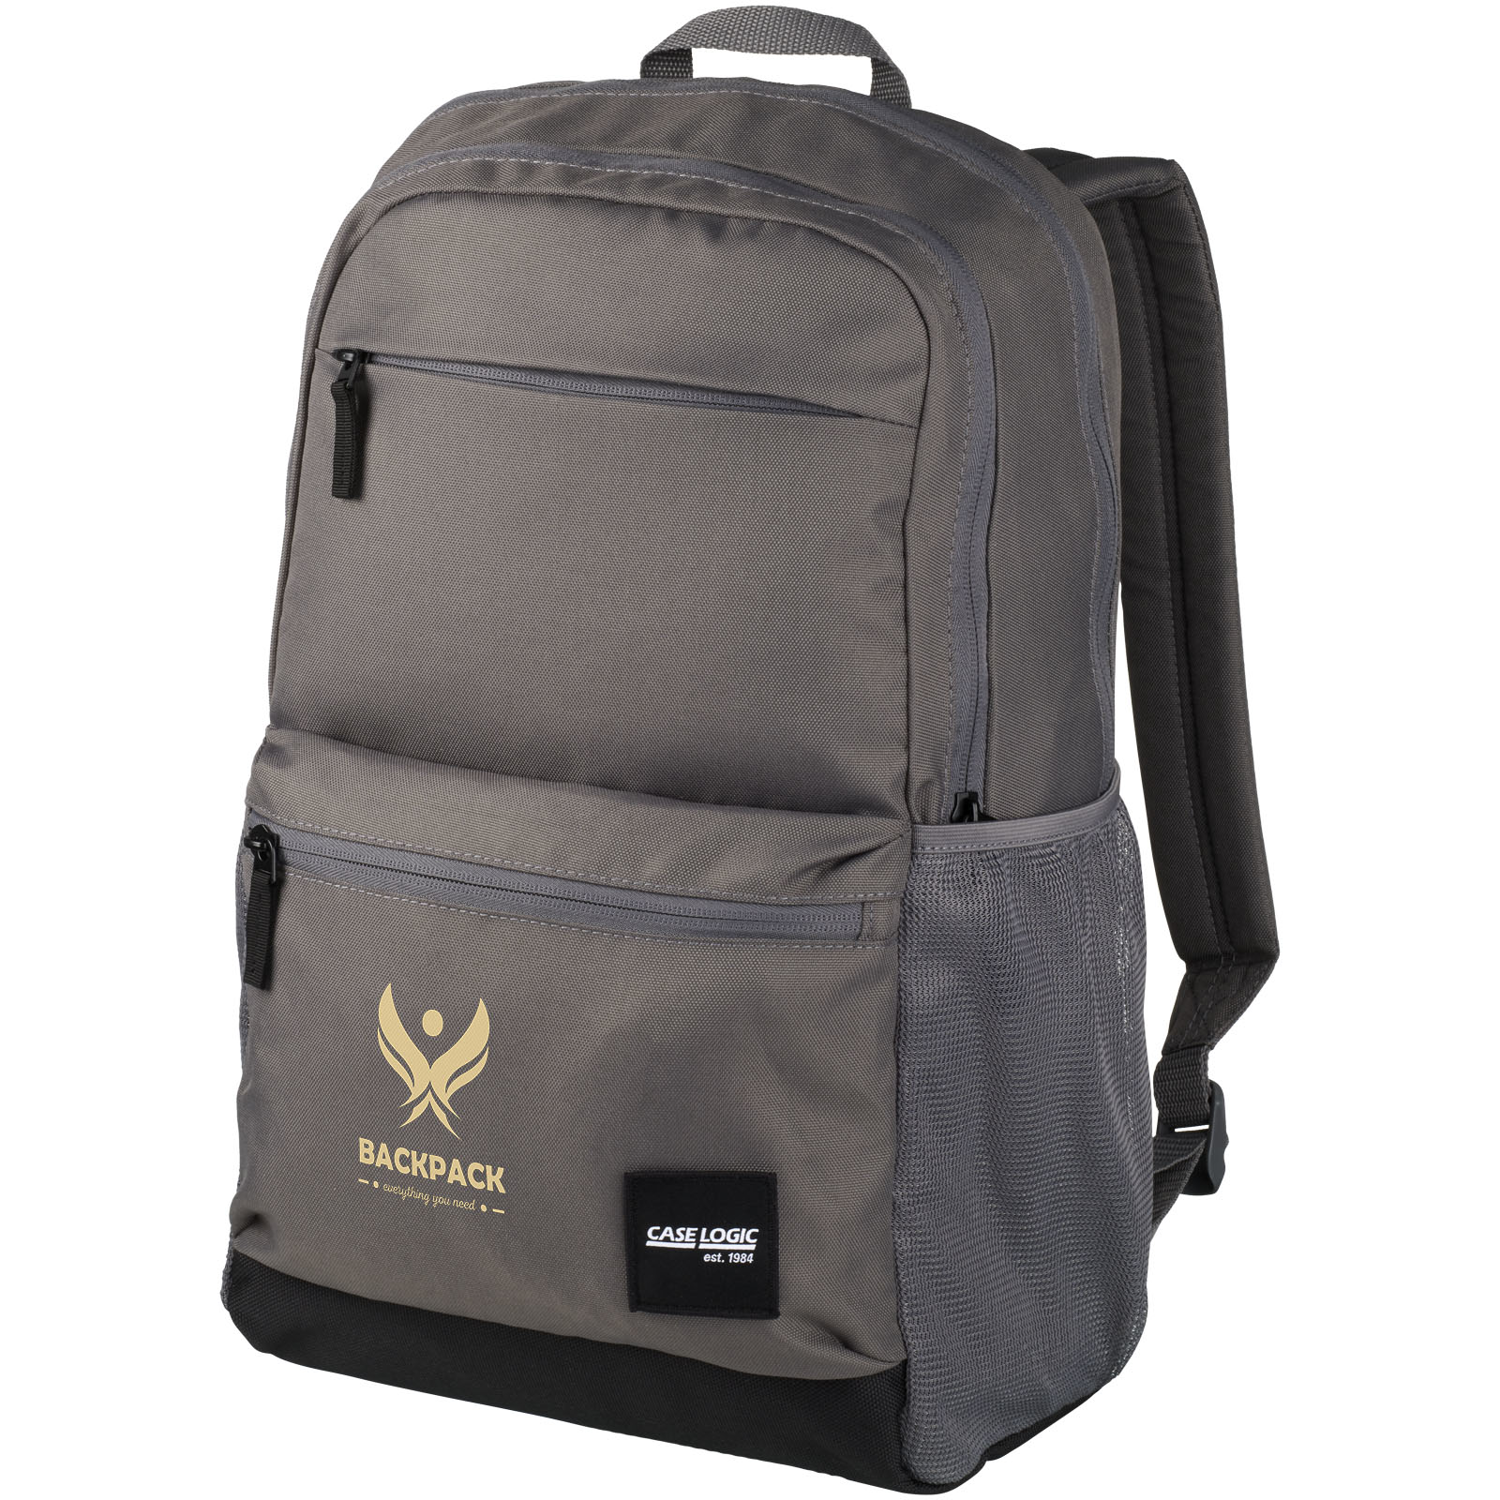 "Uplink 15.6"" Laptop Backpack"